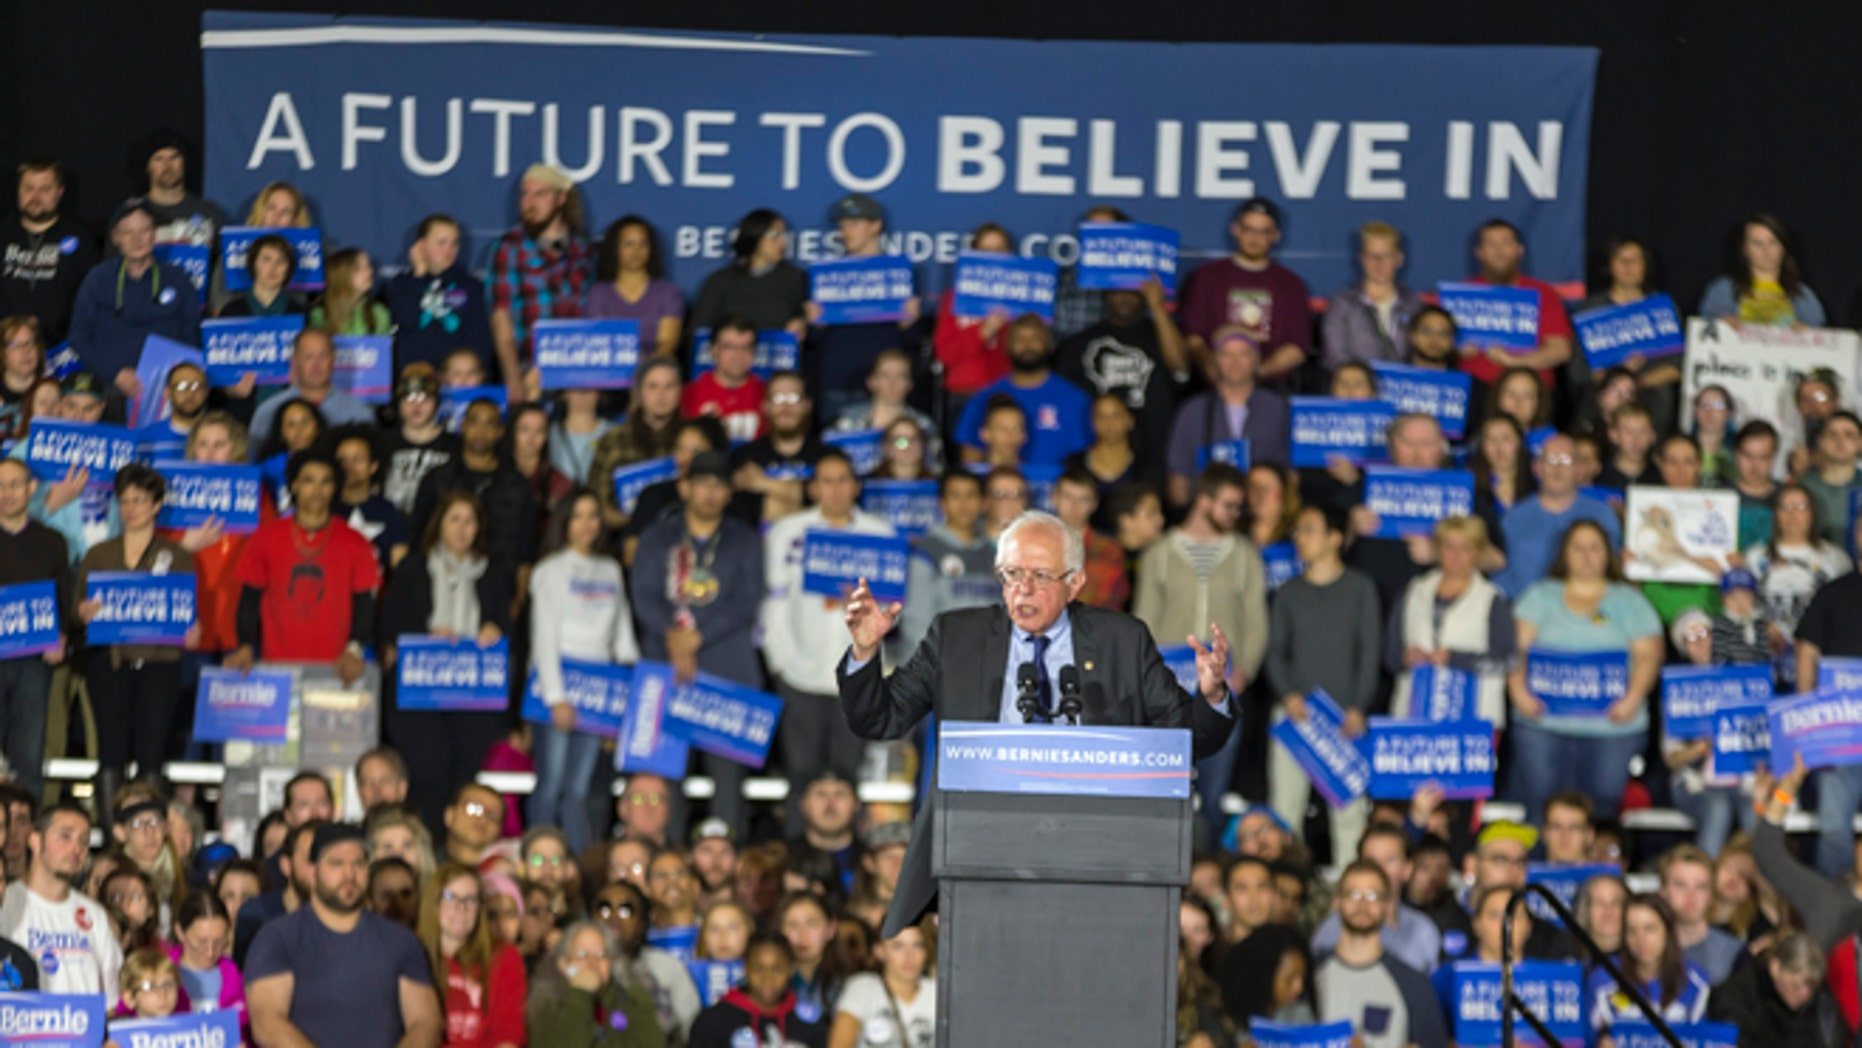 Democratic presidential candidate Sen. Bernie Sanders speaks at a campaign stop Saturday, March 26, 2016, in Madison, Wis. (AP Photo/Andy Manis)